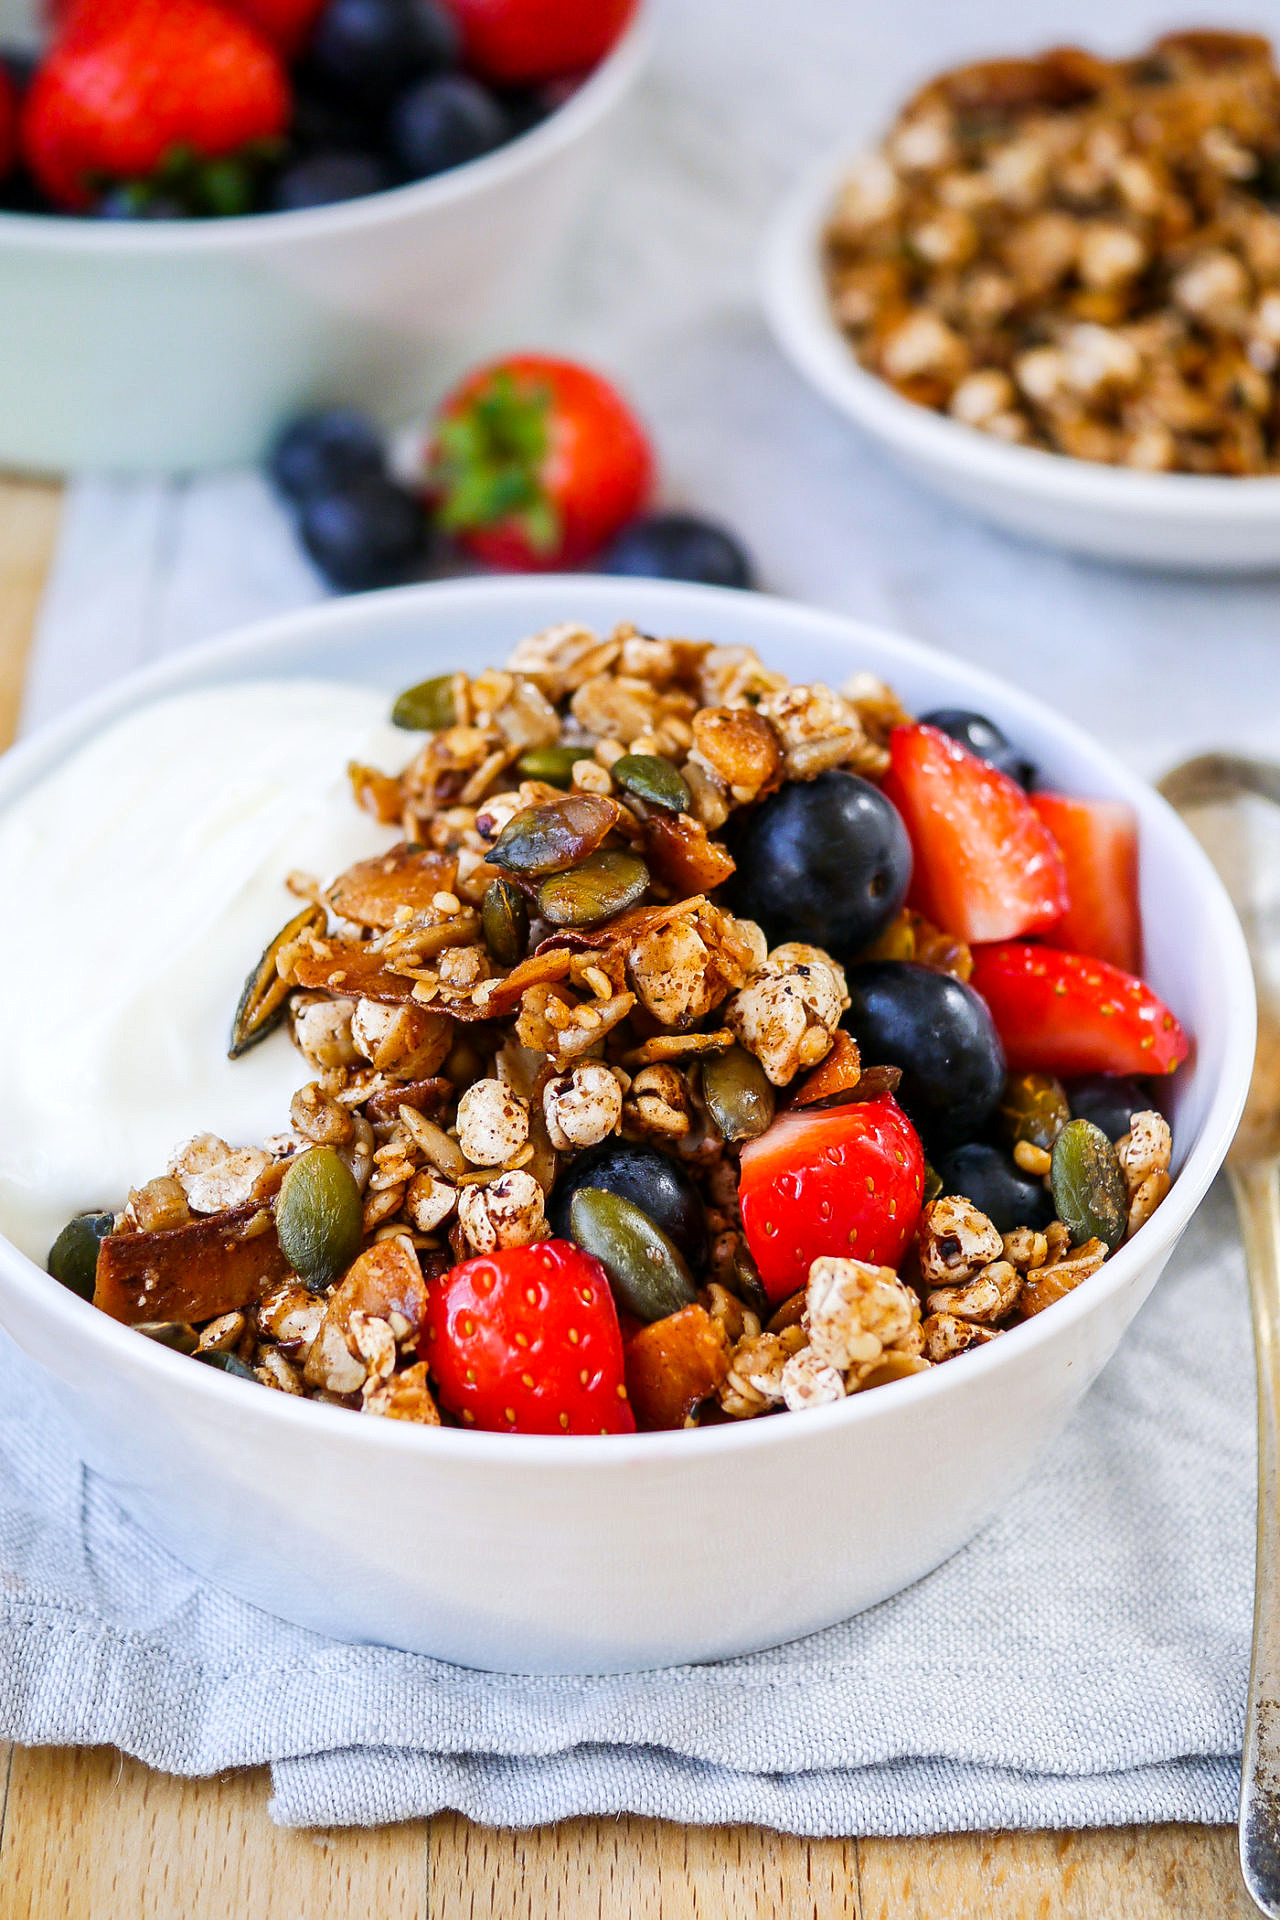 side view of a small blue bowl with Greek yoghurt, toasted muesli and berries on a wooden table